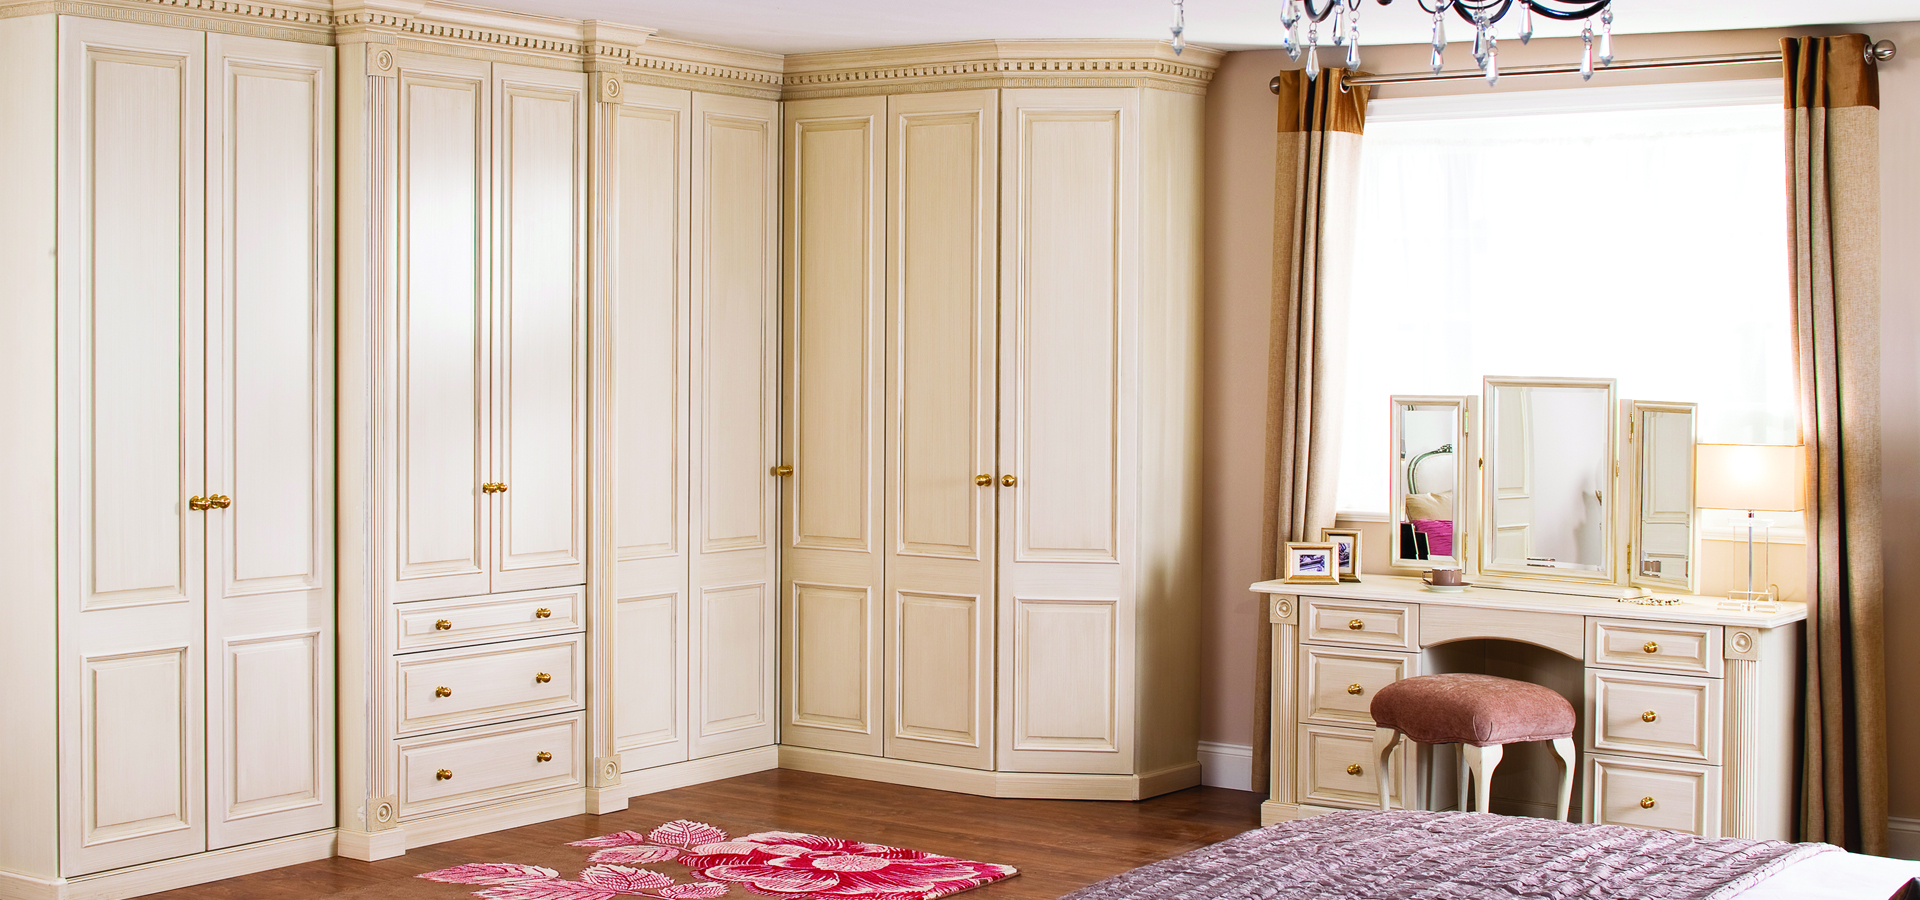 Fitted Bedroom Living Room Furniture Uk Lawrence Walsh Furniture